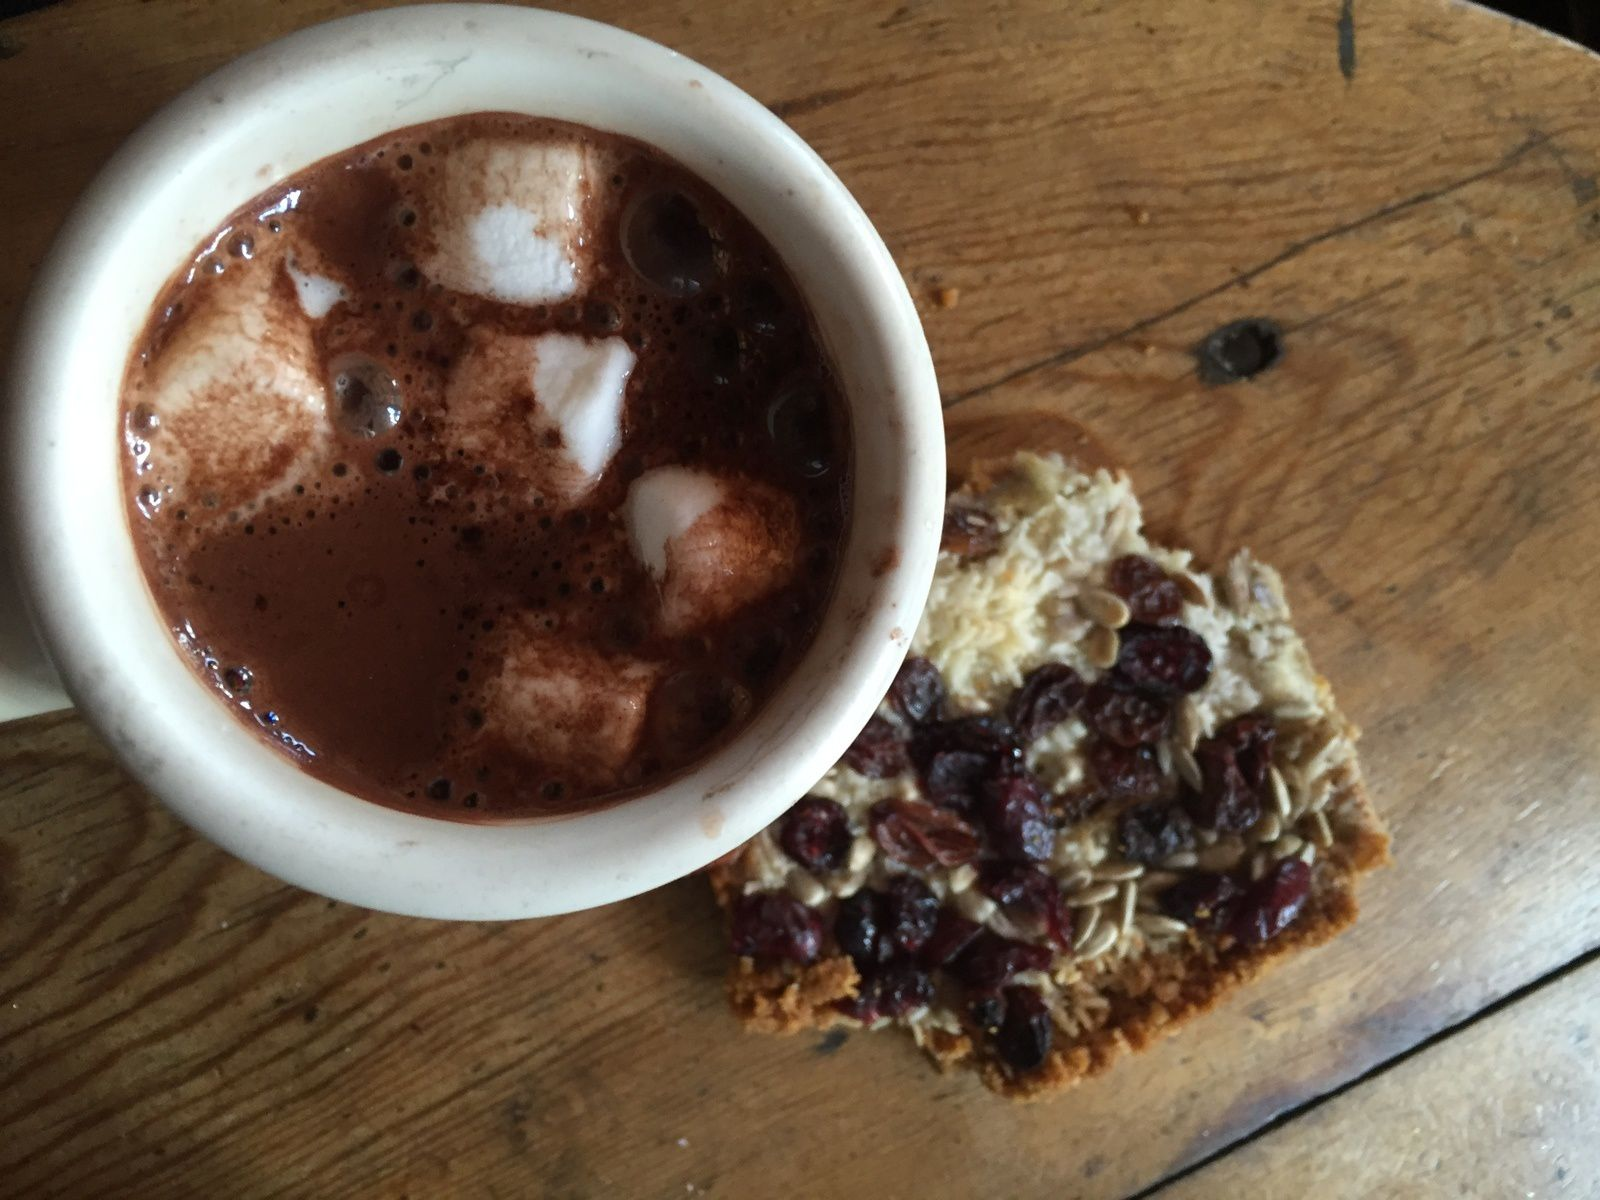 Hot chocolate with marshmallows in lake Agnès tea house